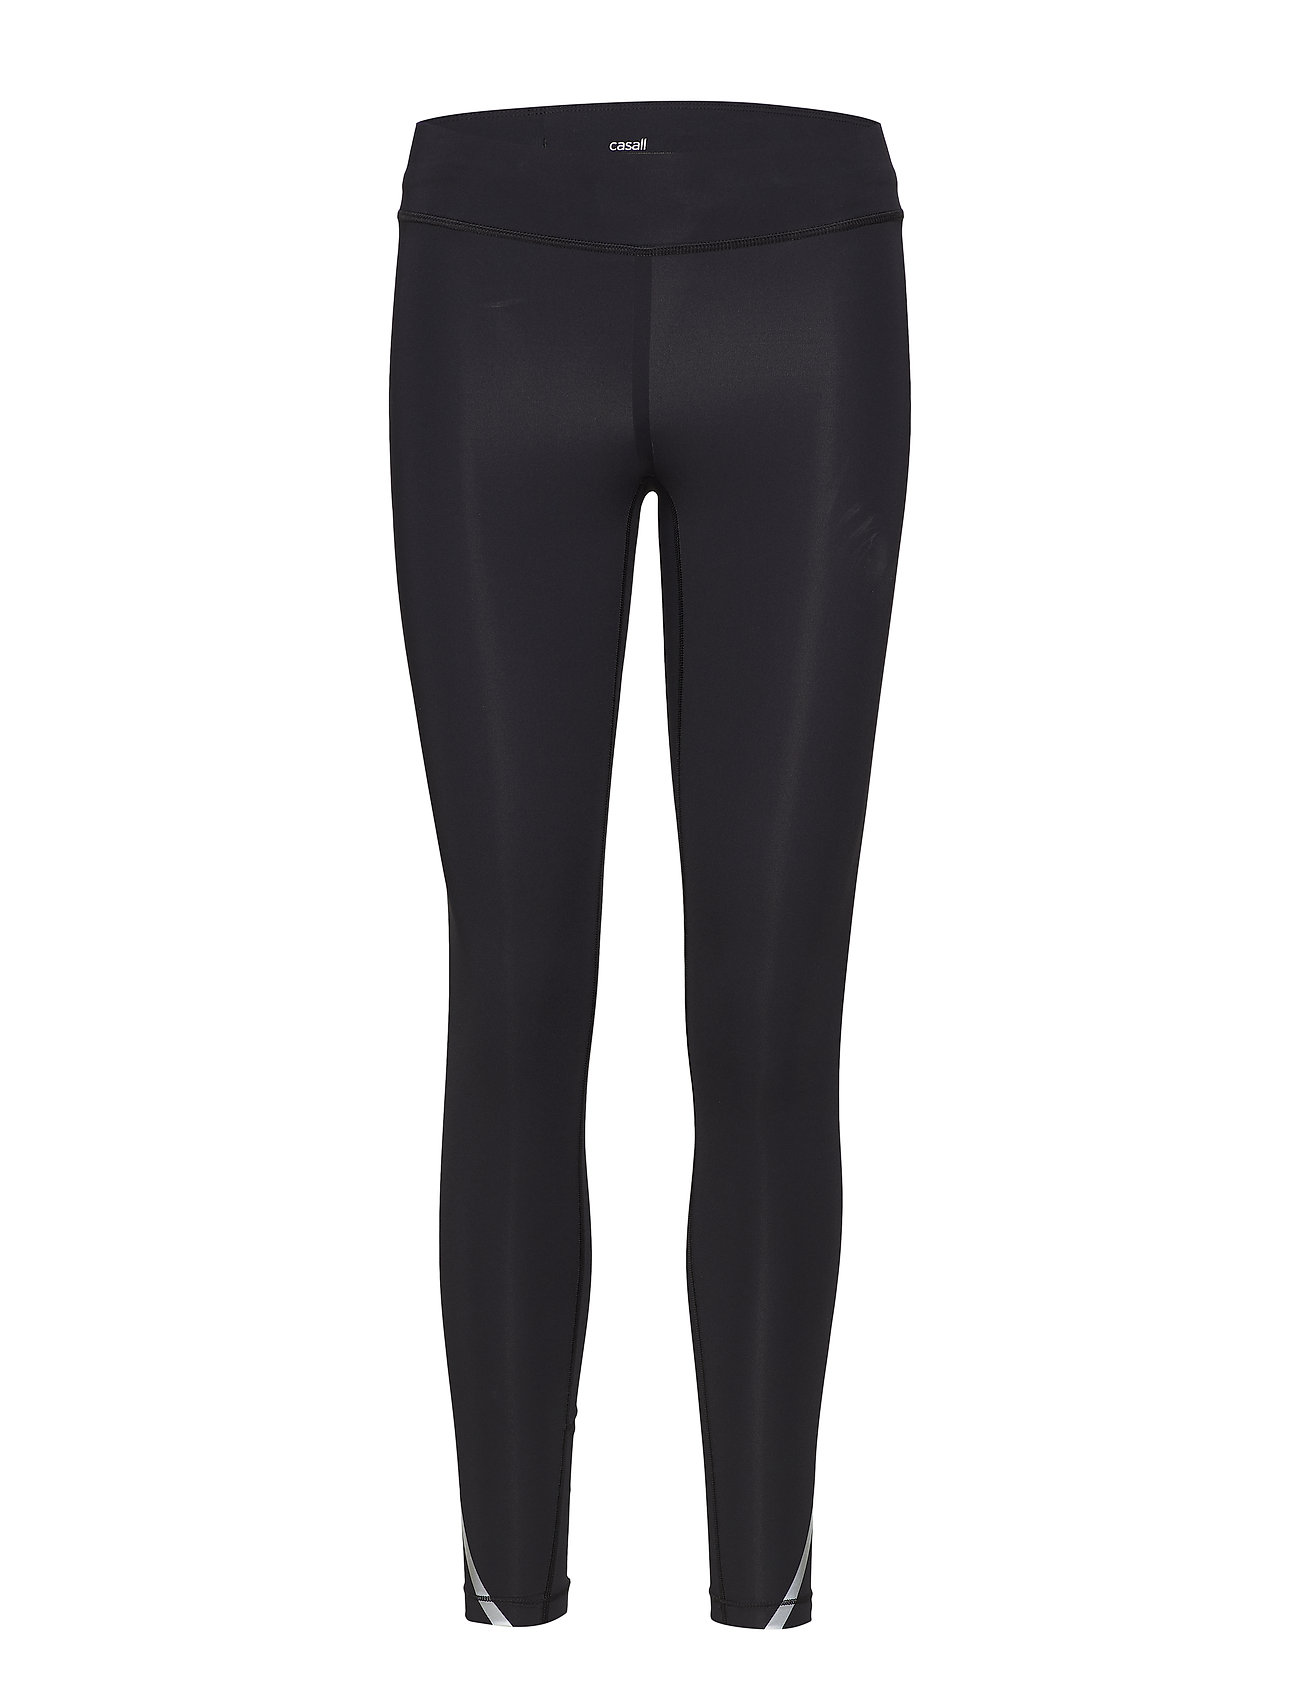 Casall AR2 Renew Compression Tights - BLACK